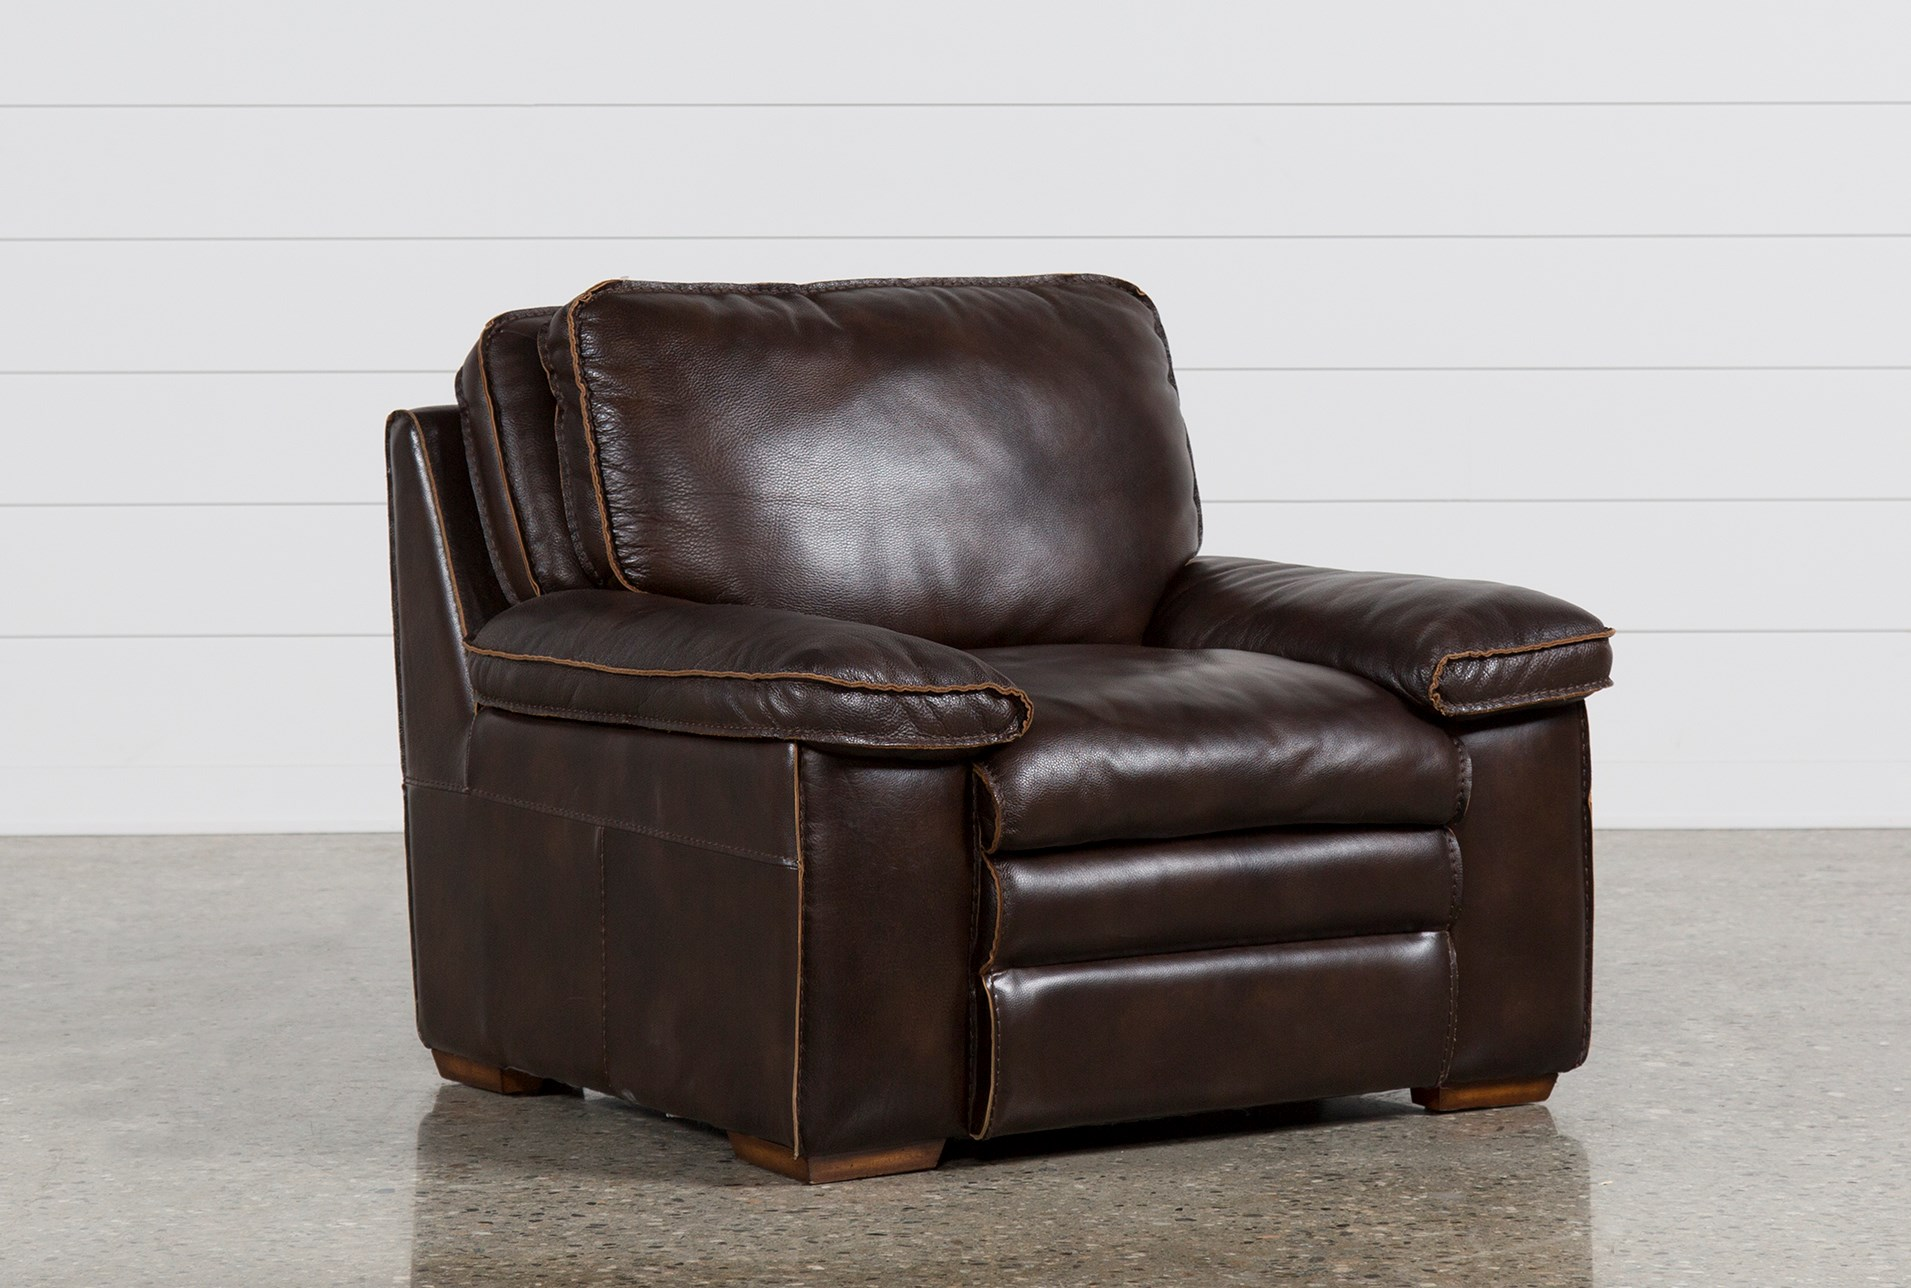 Miraculous Walter Leather Chair Cjindustries Chair Design For Home Cjindustriesco